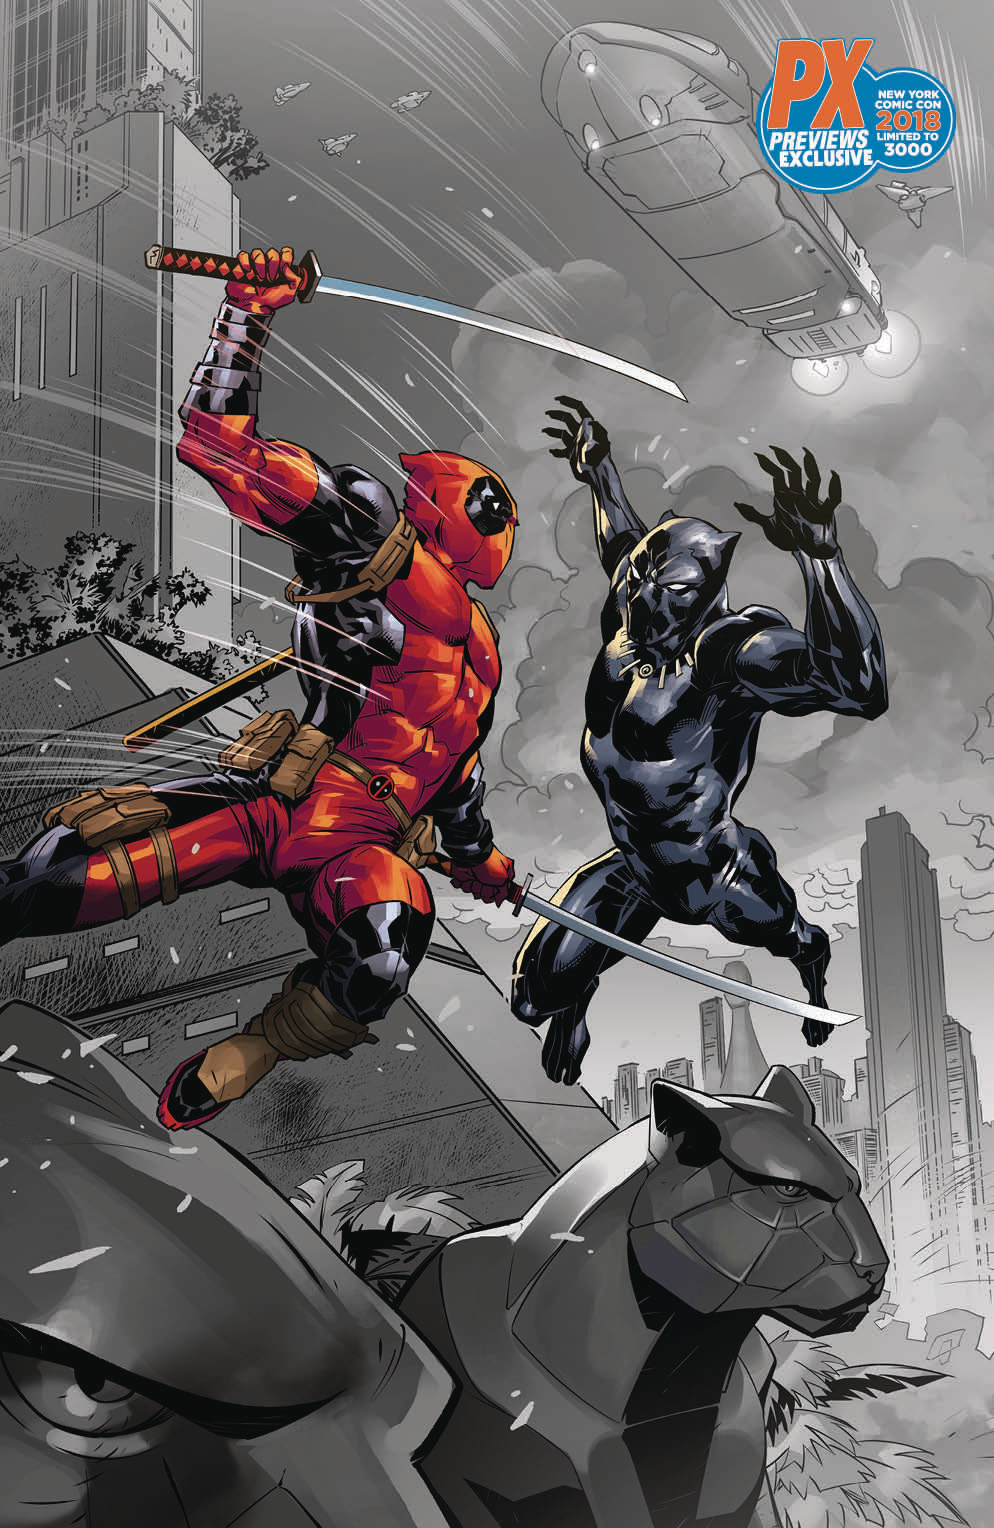 NYCC 2018 BLACK PANTHER VS DEADPOOL #1 (OF 5) BENJAMIN VAR (